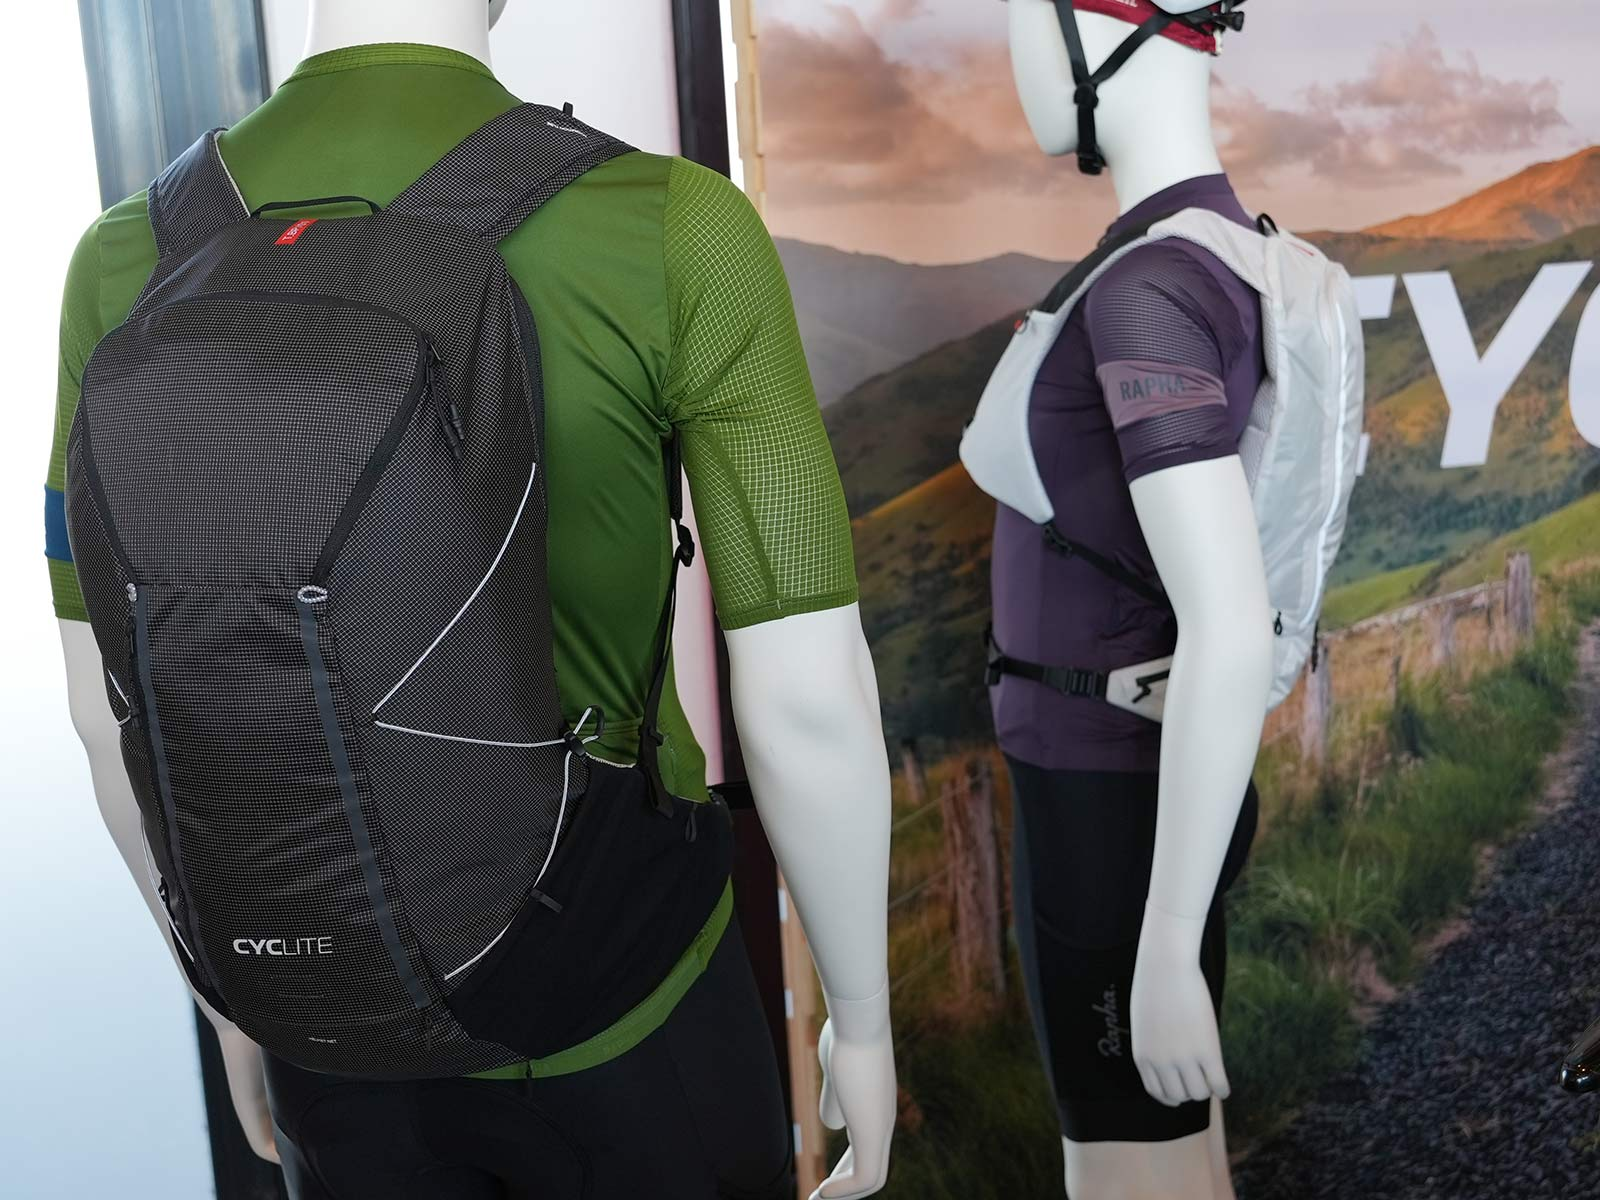 cyclite ultralight hydration backpack for riding and hiking